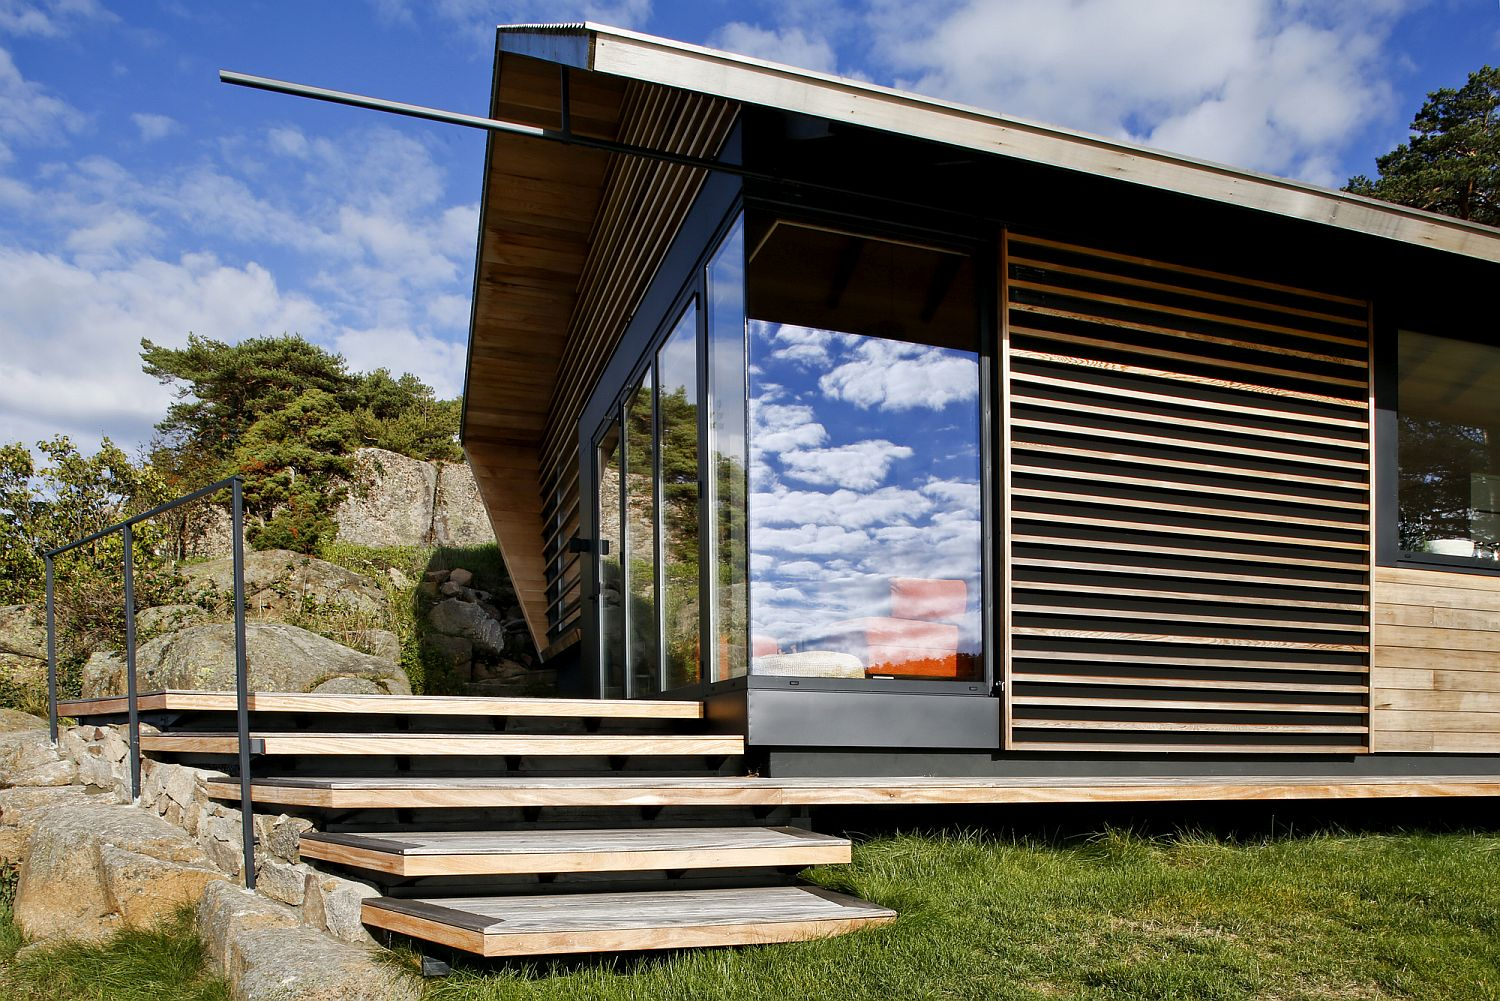 Elevated-platform-gives-those-inside-the-cabin-lovely-views-of-the-coastline